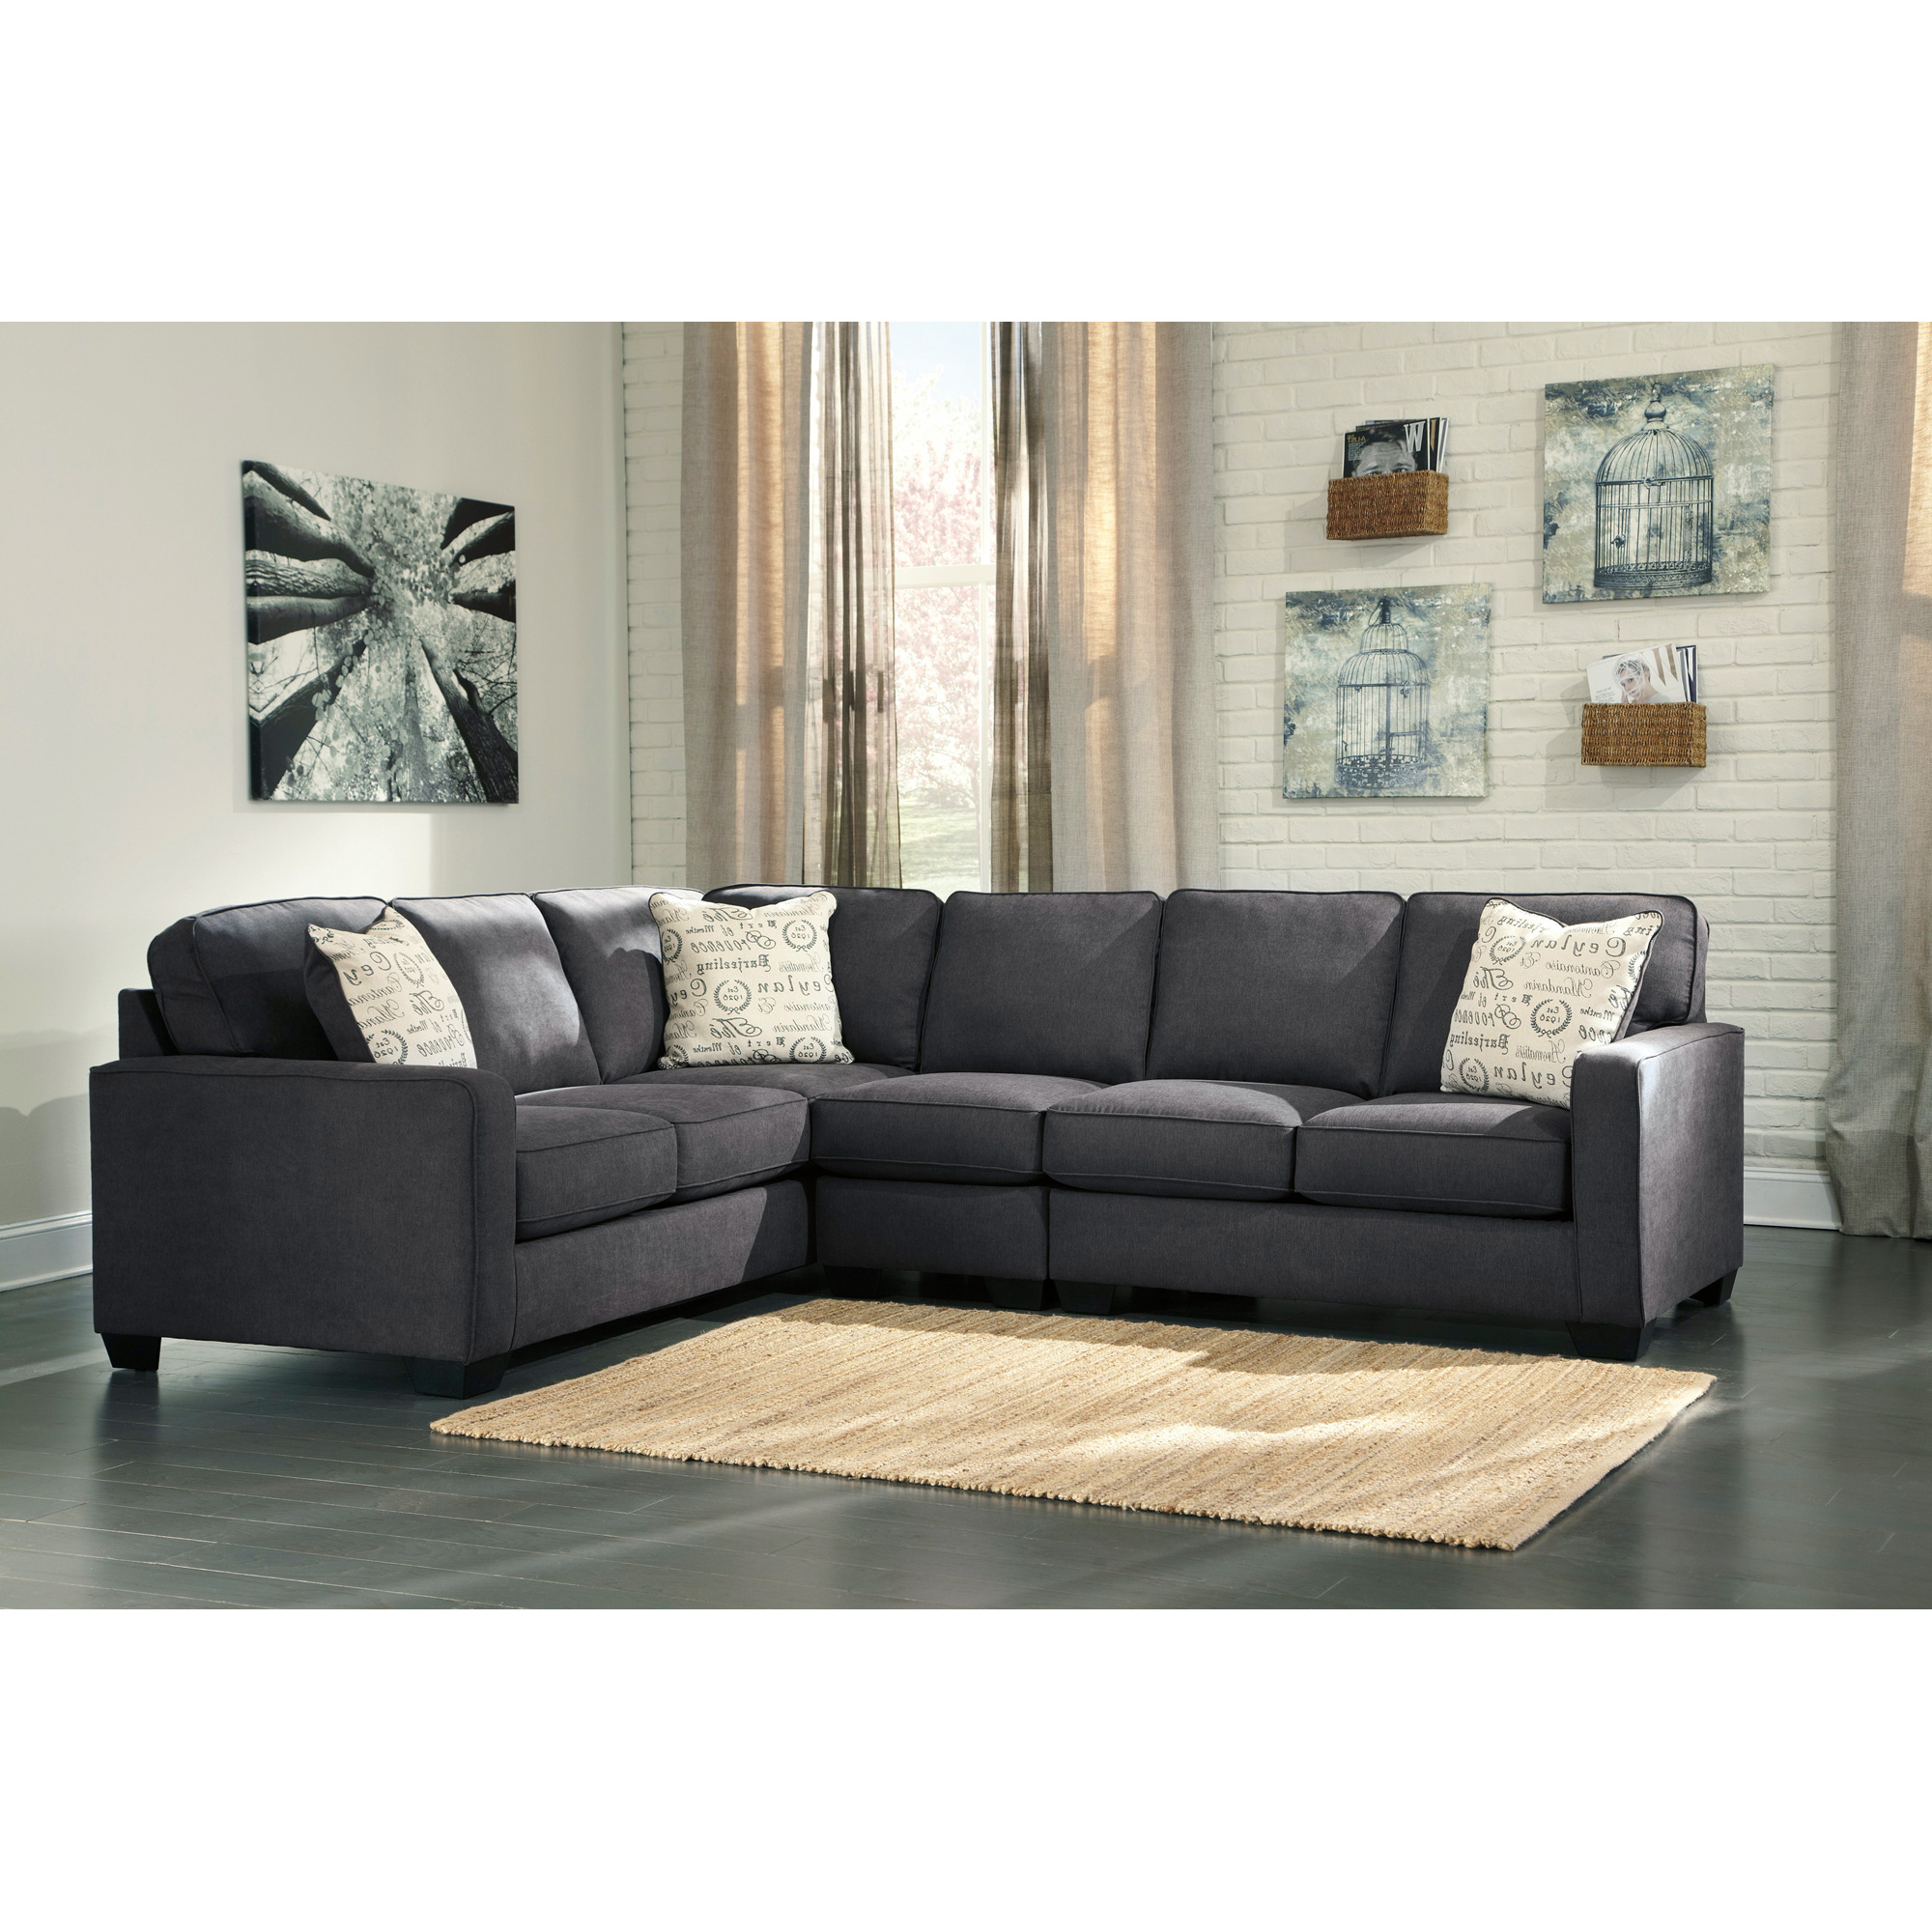 Ashley Furniture | Alenya Charcoal 3 Piece Right Sectional Sofa